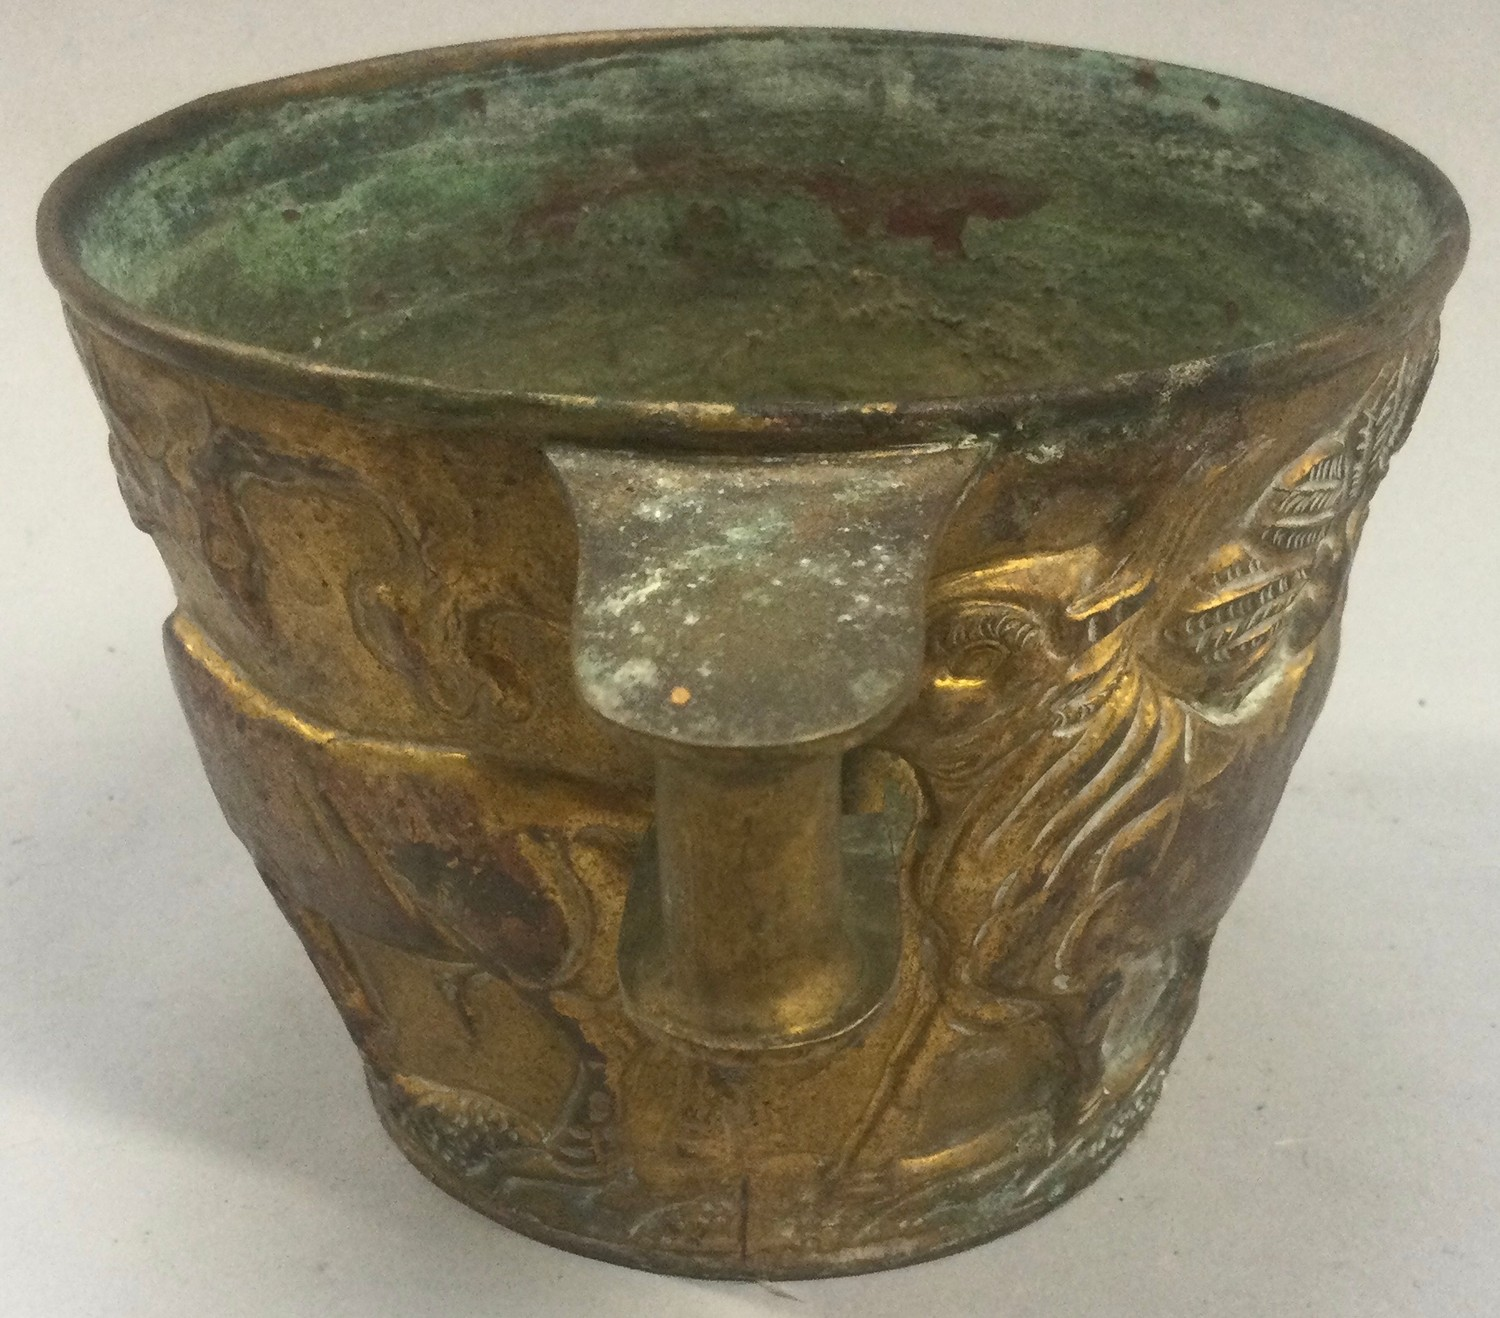 An Arts & Crafts brass Vapheio cup decorated with embossed figures. - Image 3 of 4